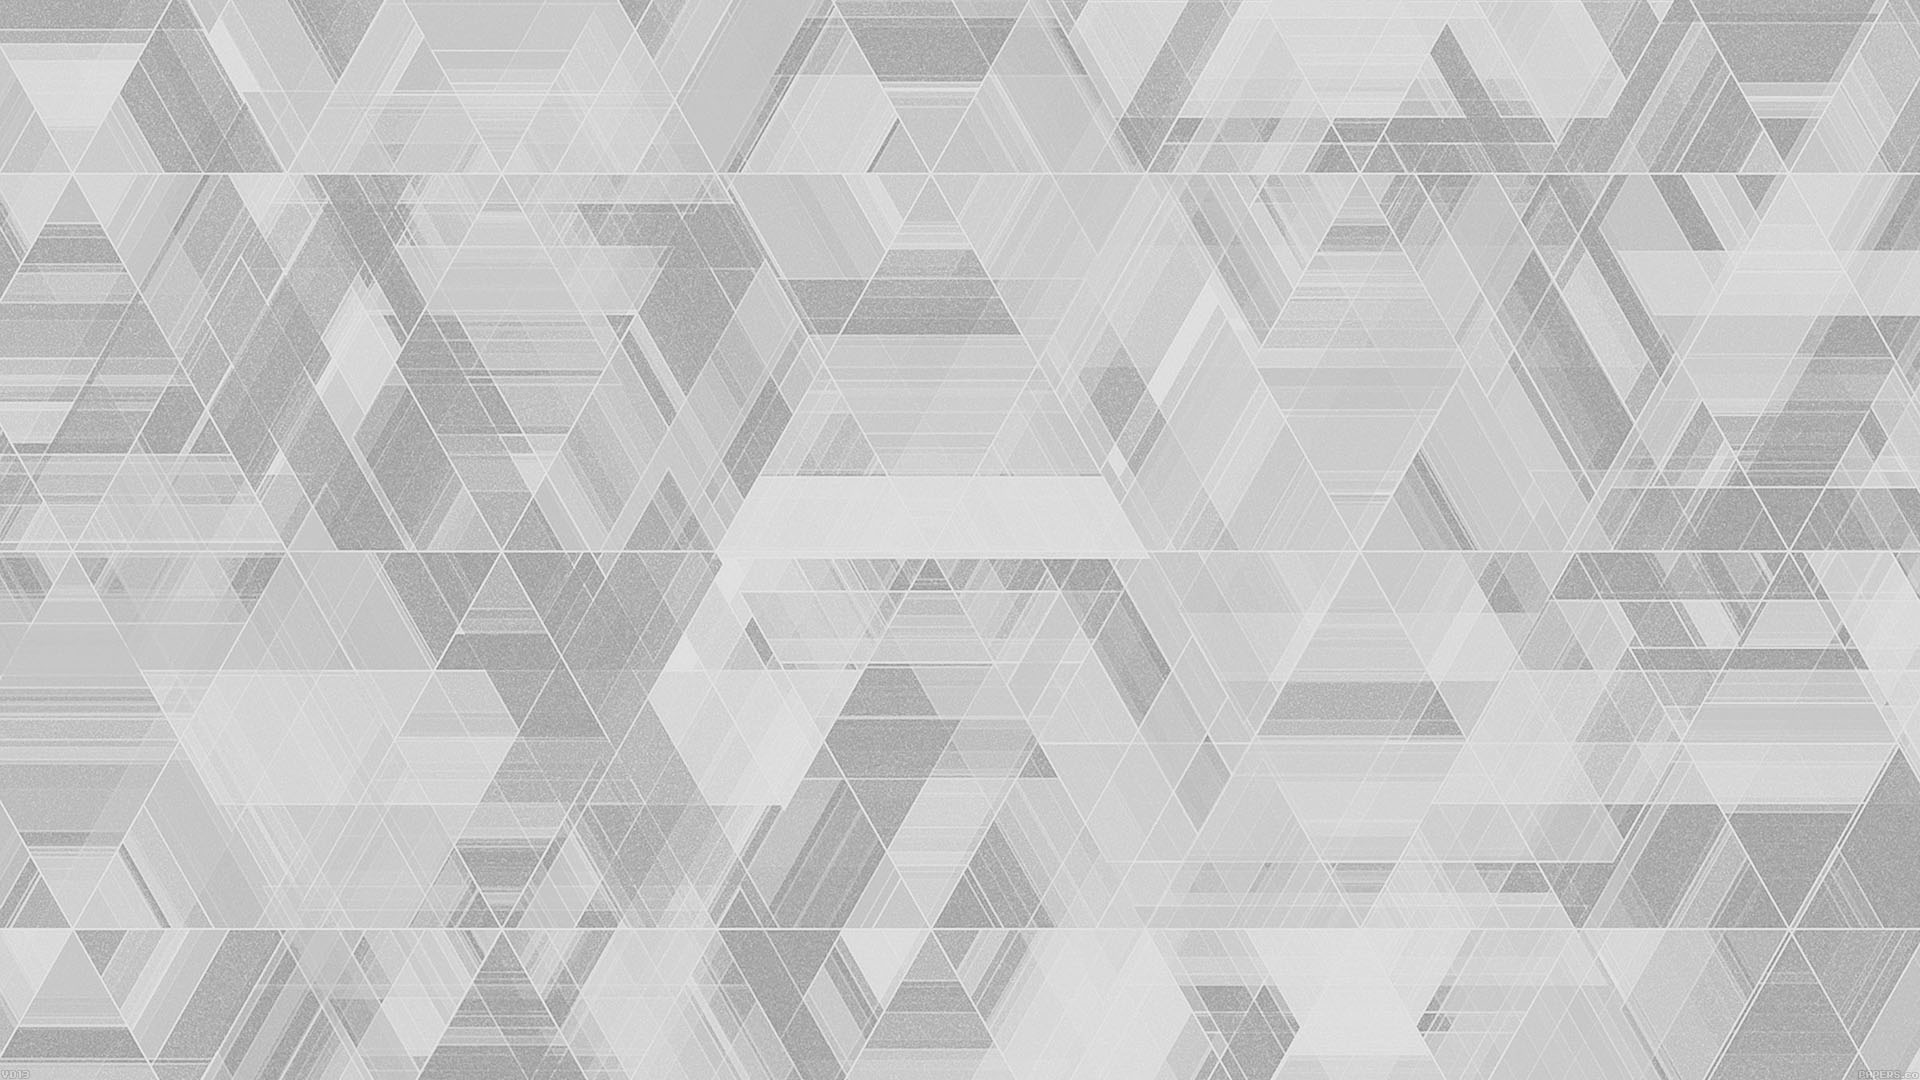 Vd13 space white simple abstract cimon cpage pattern art - White abstract background hd ...